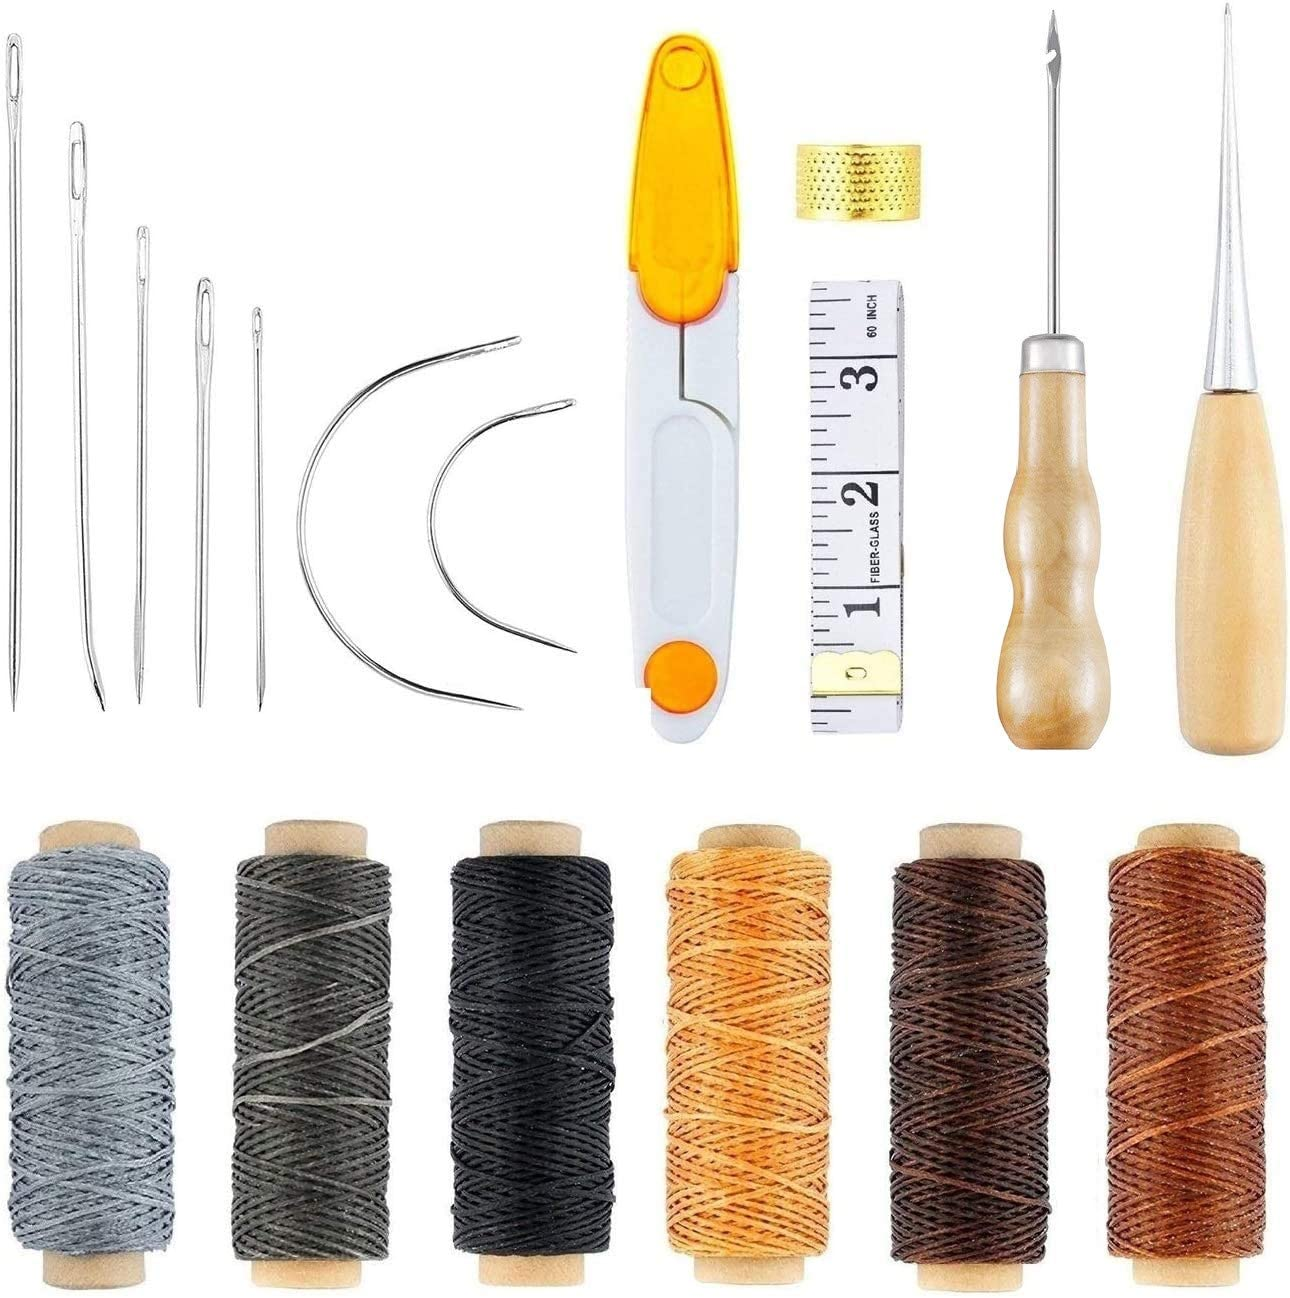 18 Pieces Leather Craft Tool Leather Hand Sewing Needles Upholstery Carpet Leather Canvas DIY Sewing Accessories